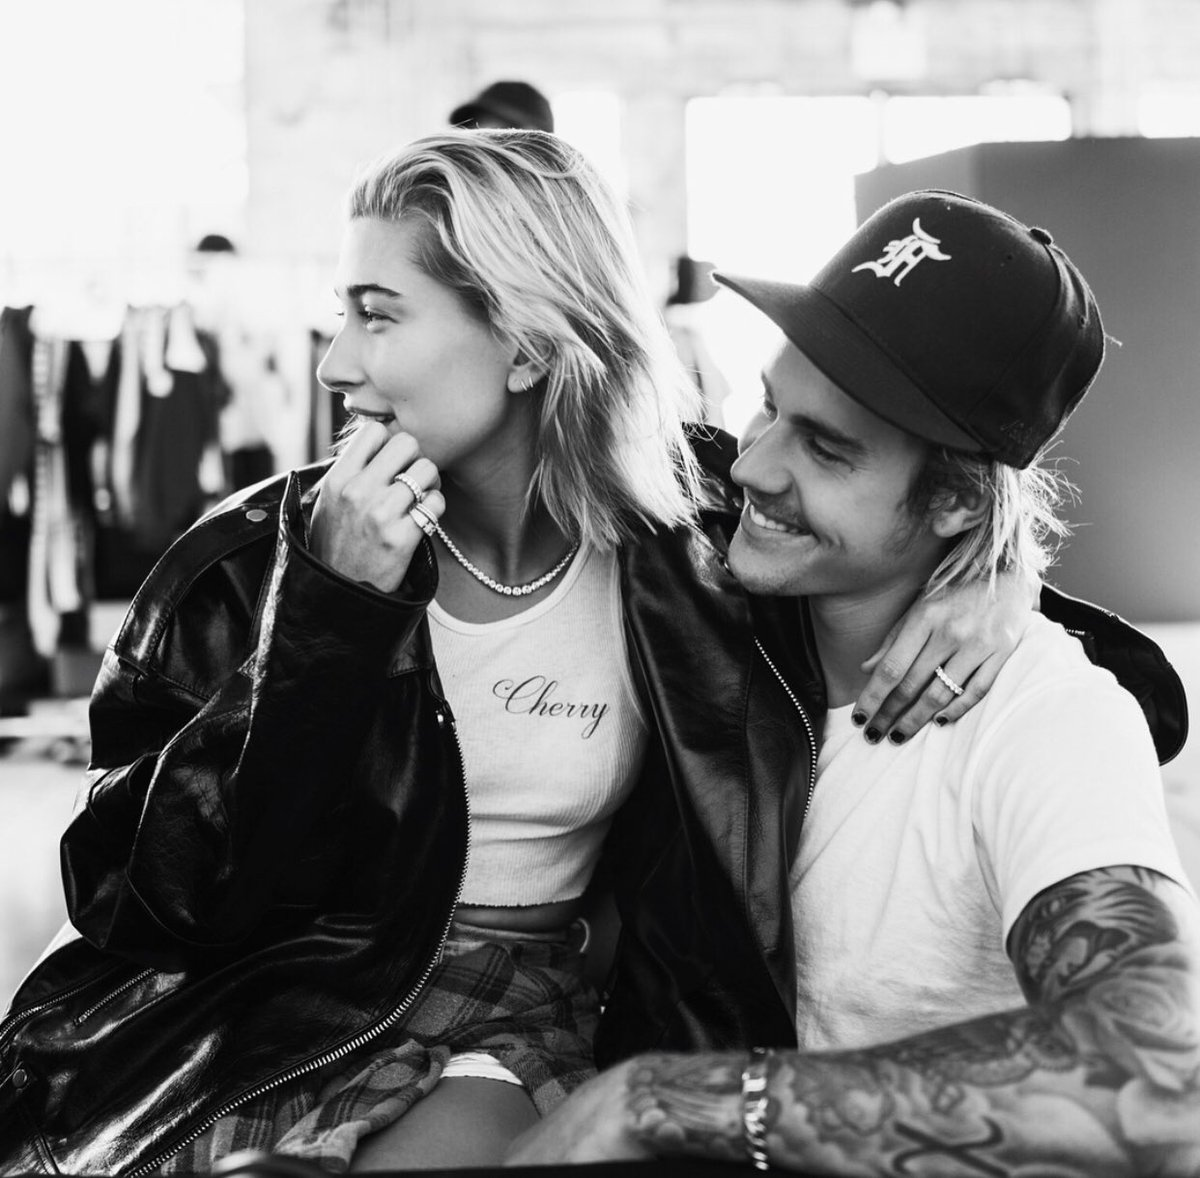 Justin Bieber and Hailey Baldwin reunion is now complete after an intense make out session in a Brooklyn park which looks like its straight out of a